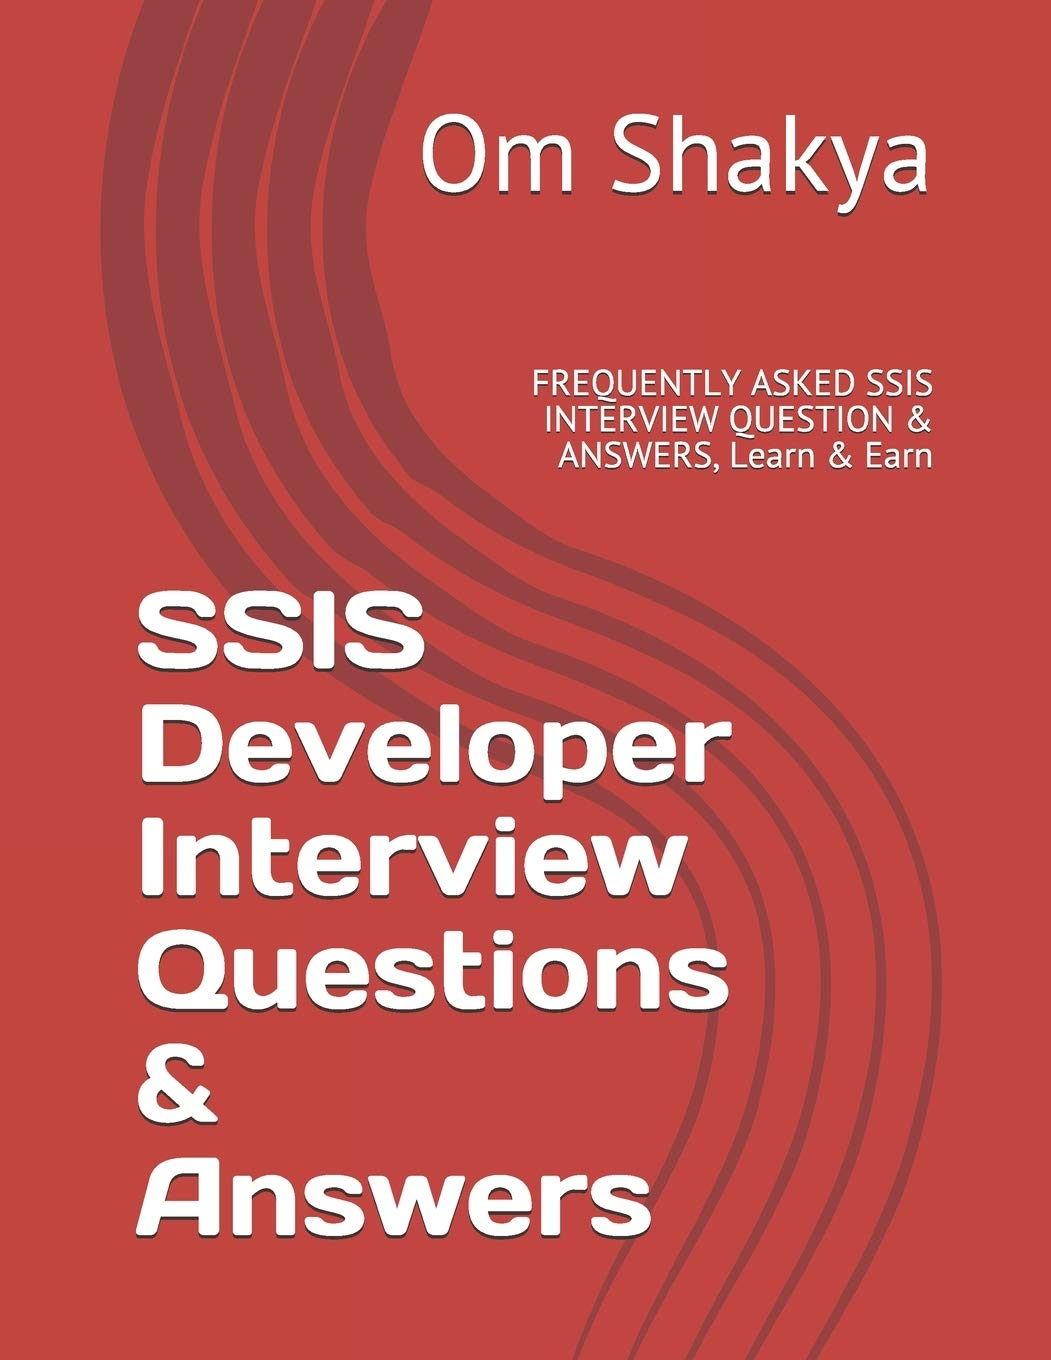 SSIS Developer Interview Questions & Answers: FREQUENTLY ASKED SSIS INTERVIEW QUESTION & ANSWERS, Learn & Earn